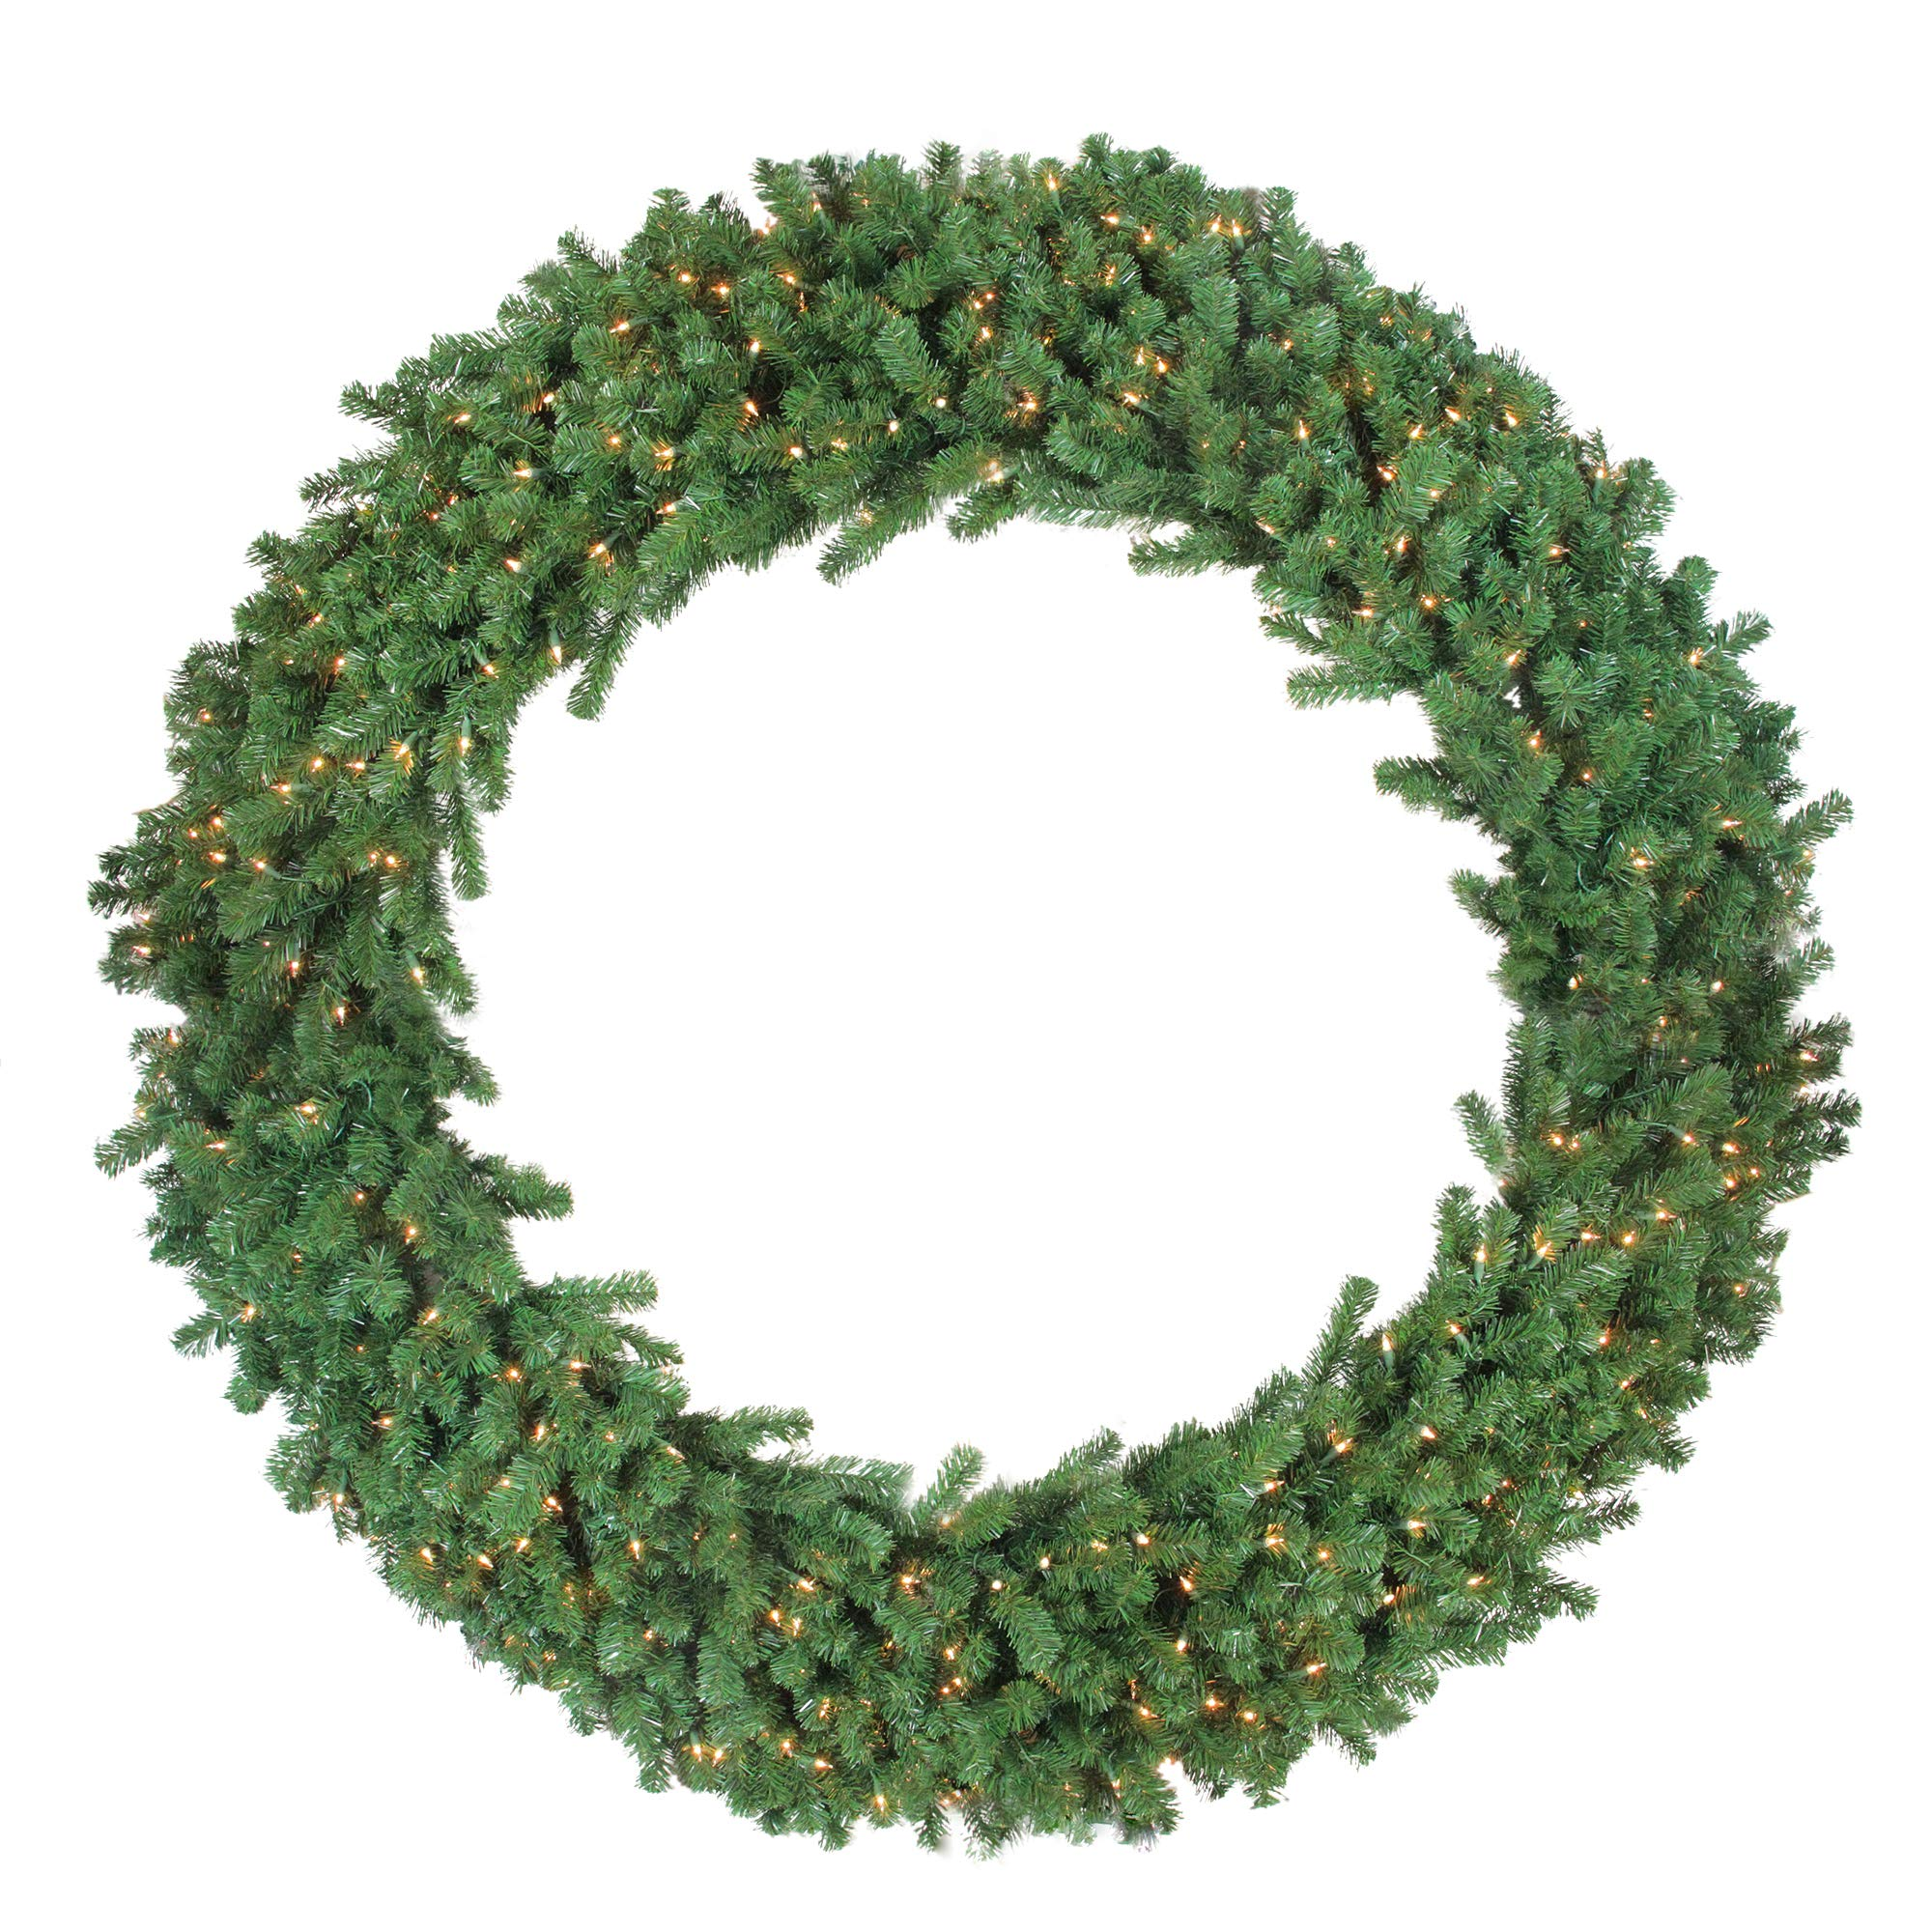 Northlight Deluxe Windsor Pine Artificial Christmas Wreath – 60-inch, Clear Lights